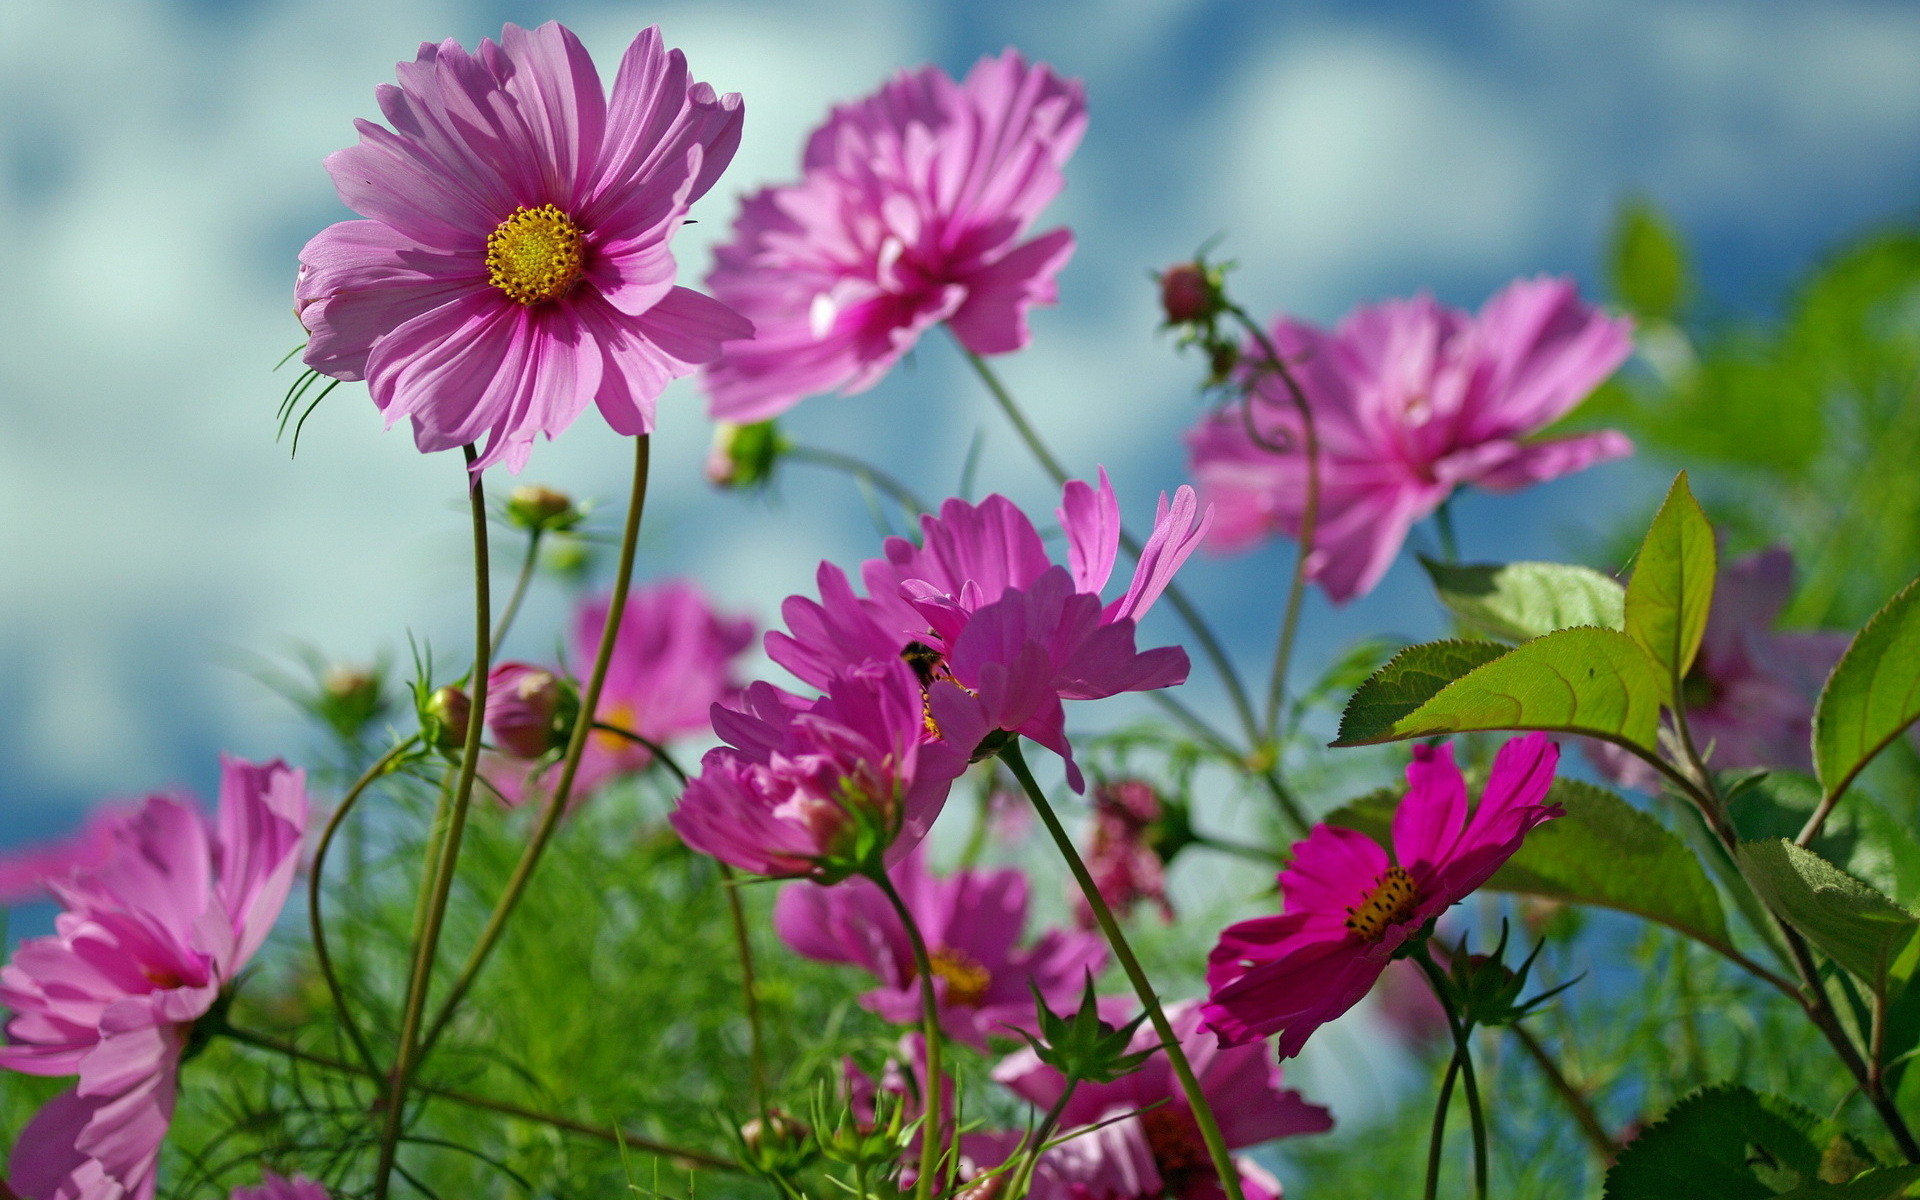 Res: 1920x1200, Summer Flowers Beauty 1920 x 1200 Download Close